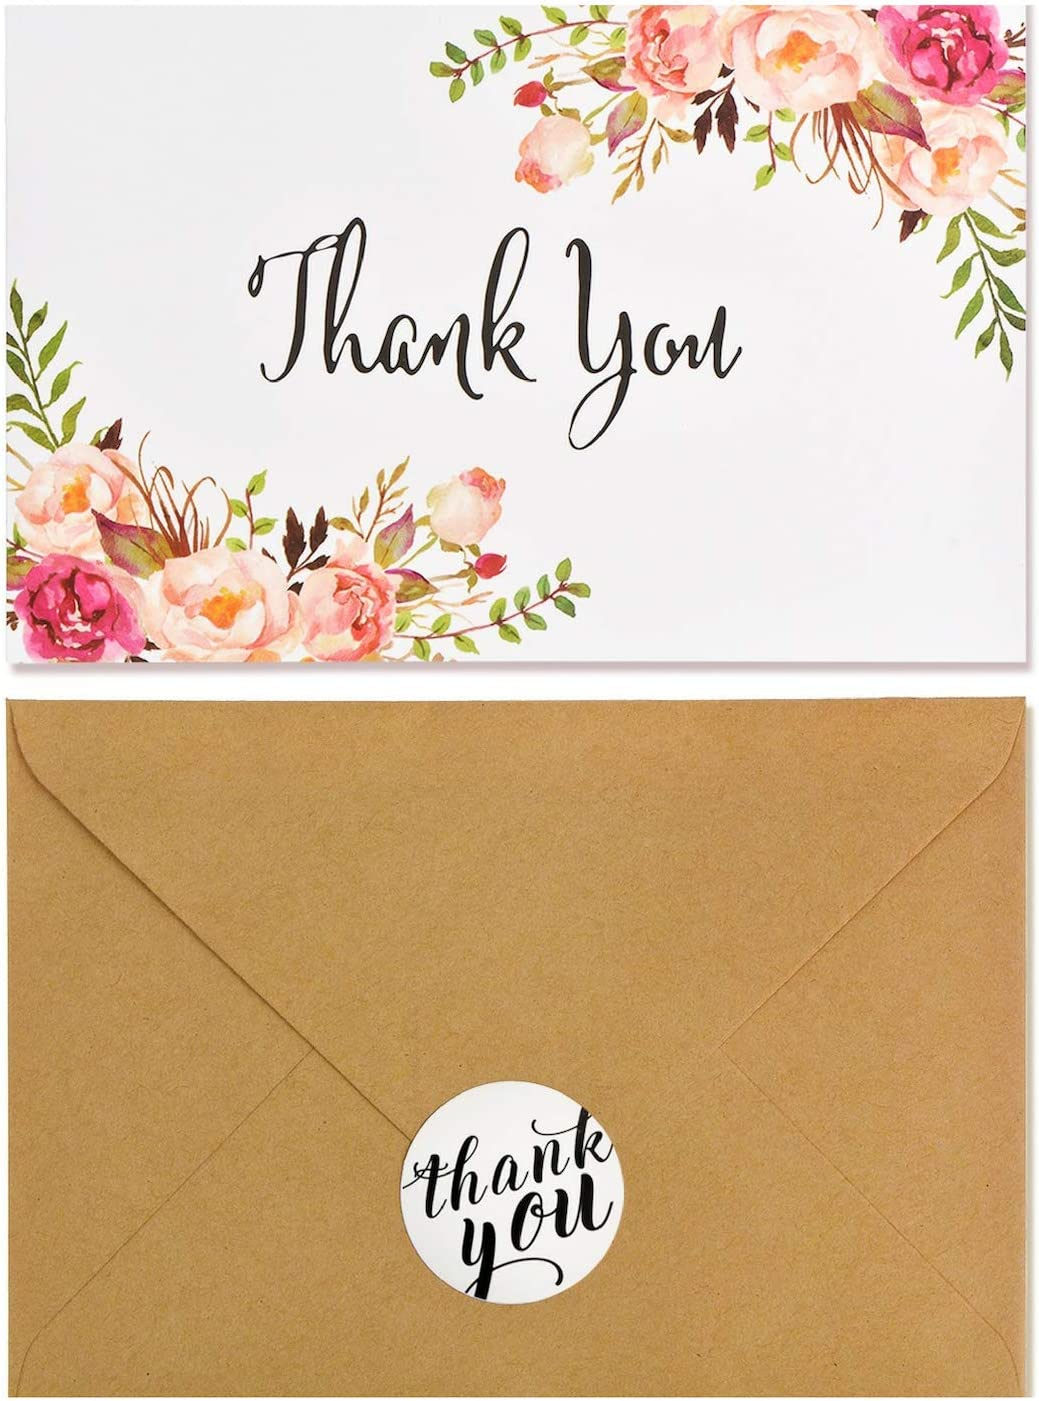 Boho Chic Floral Modern Thank You Note Card,40 Pack Thank You Card Bulk,Blank Note Card with Kraft Paper Envelopes and Stickers-Perfect for Wedding, Baby